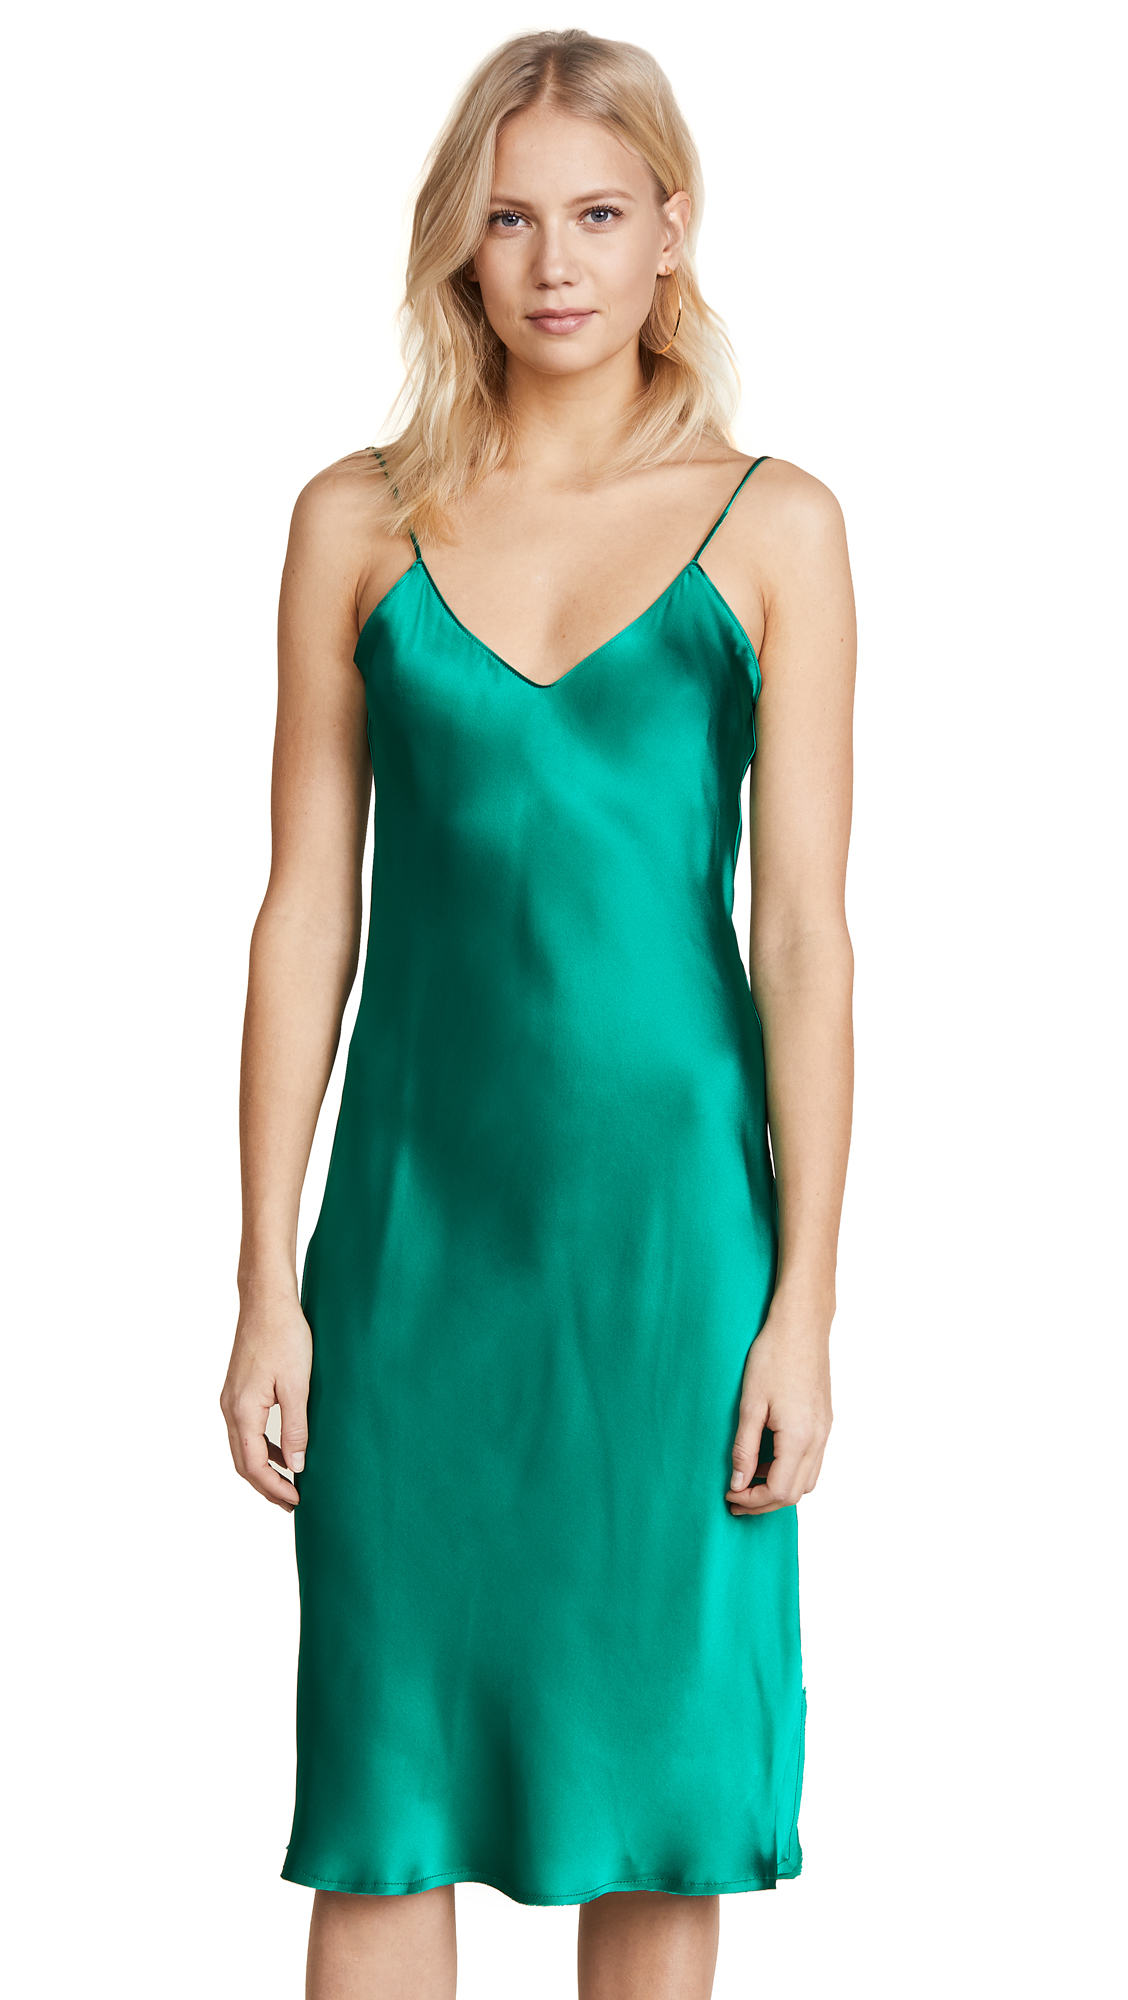 Emerson Thorpe Hallie Slip Dress - Emerald